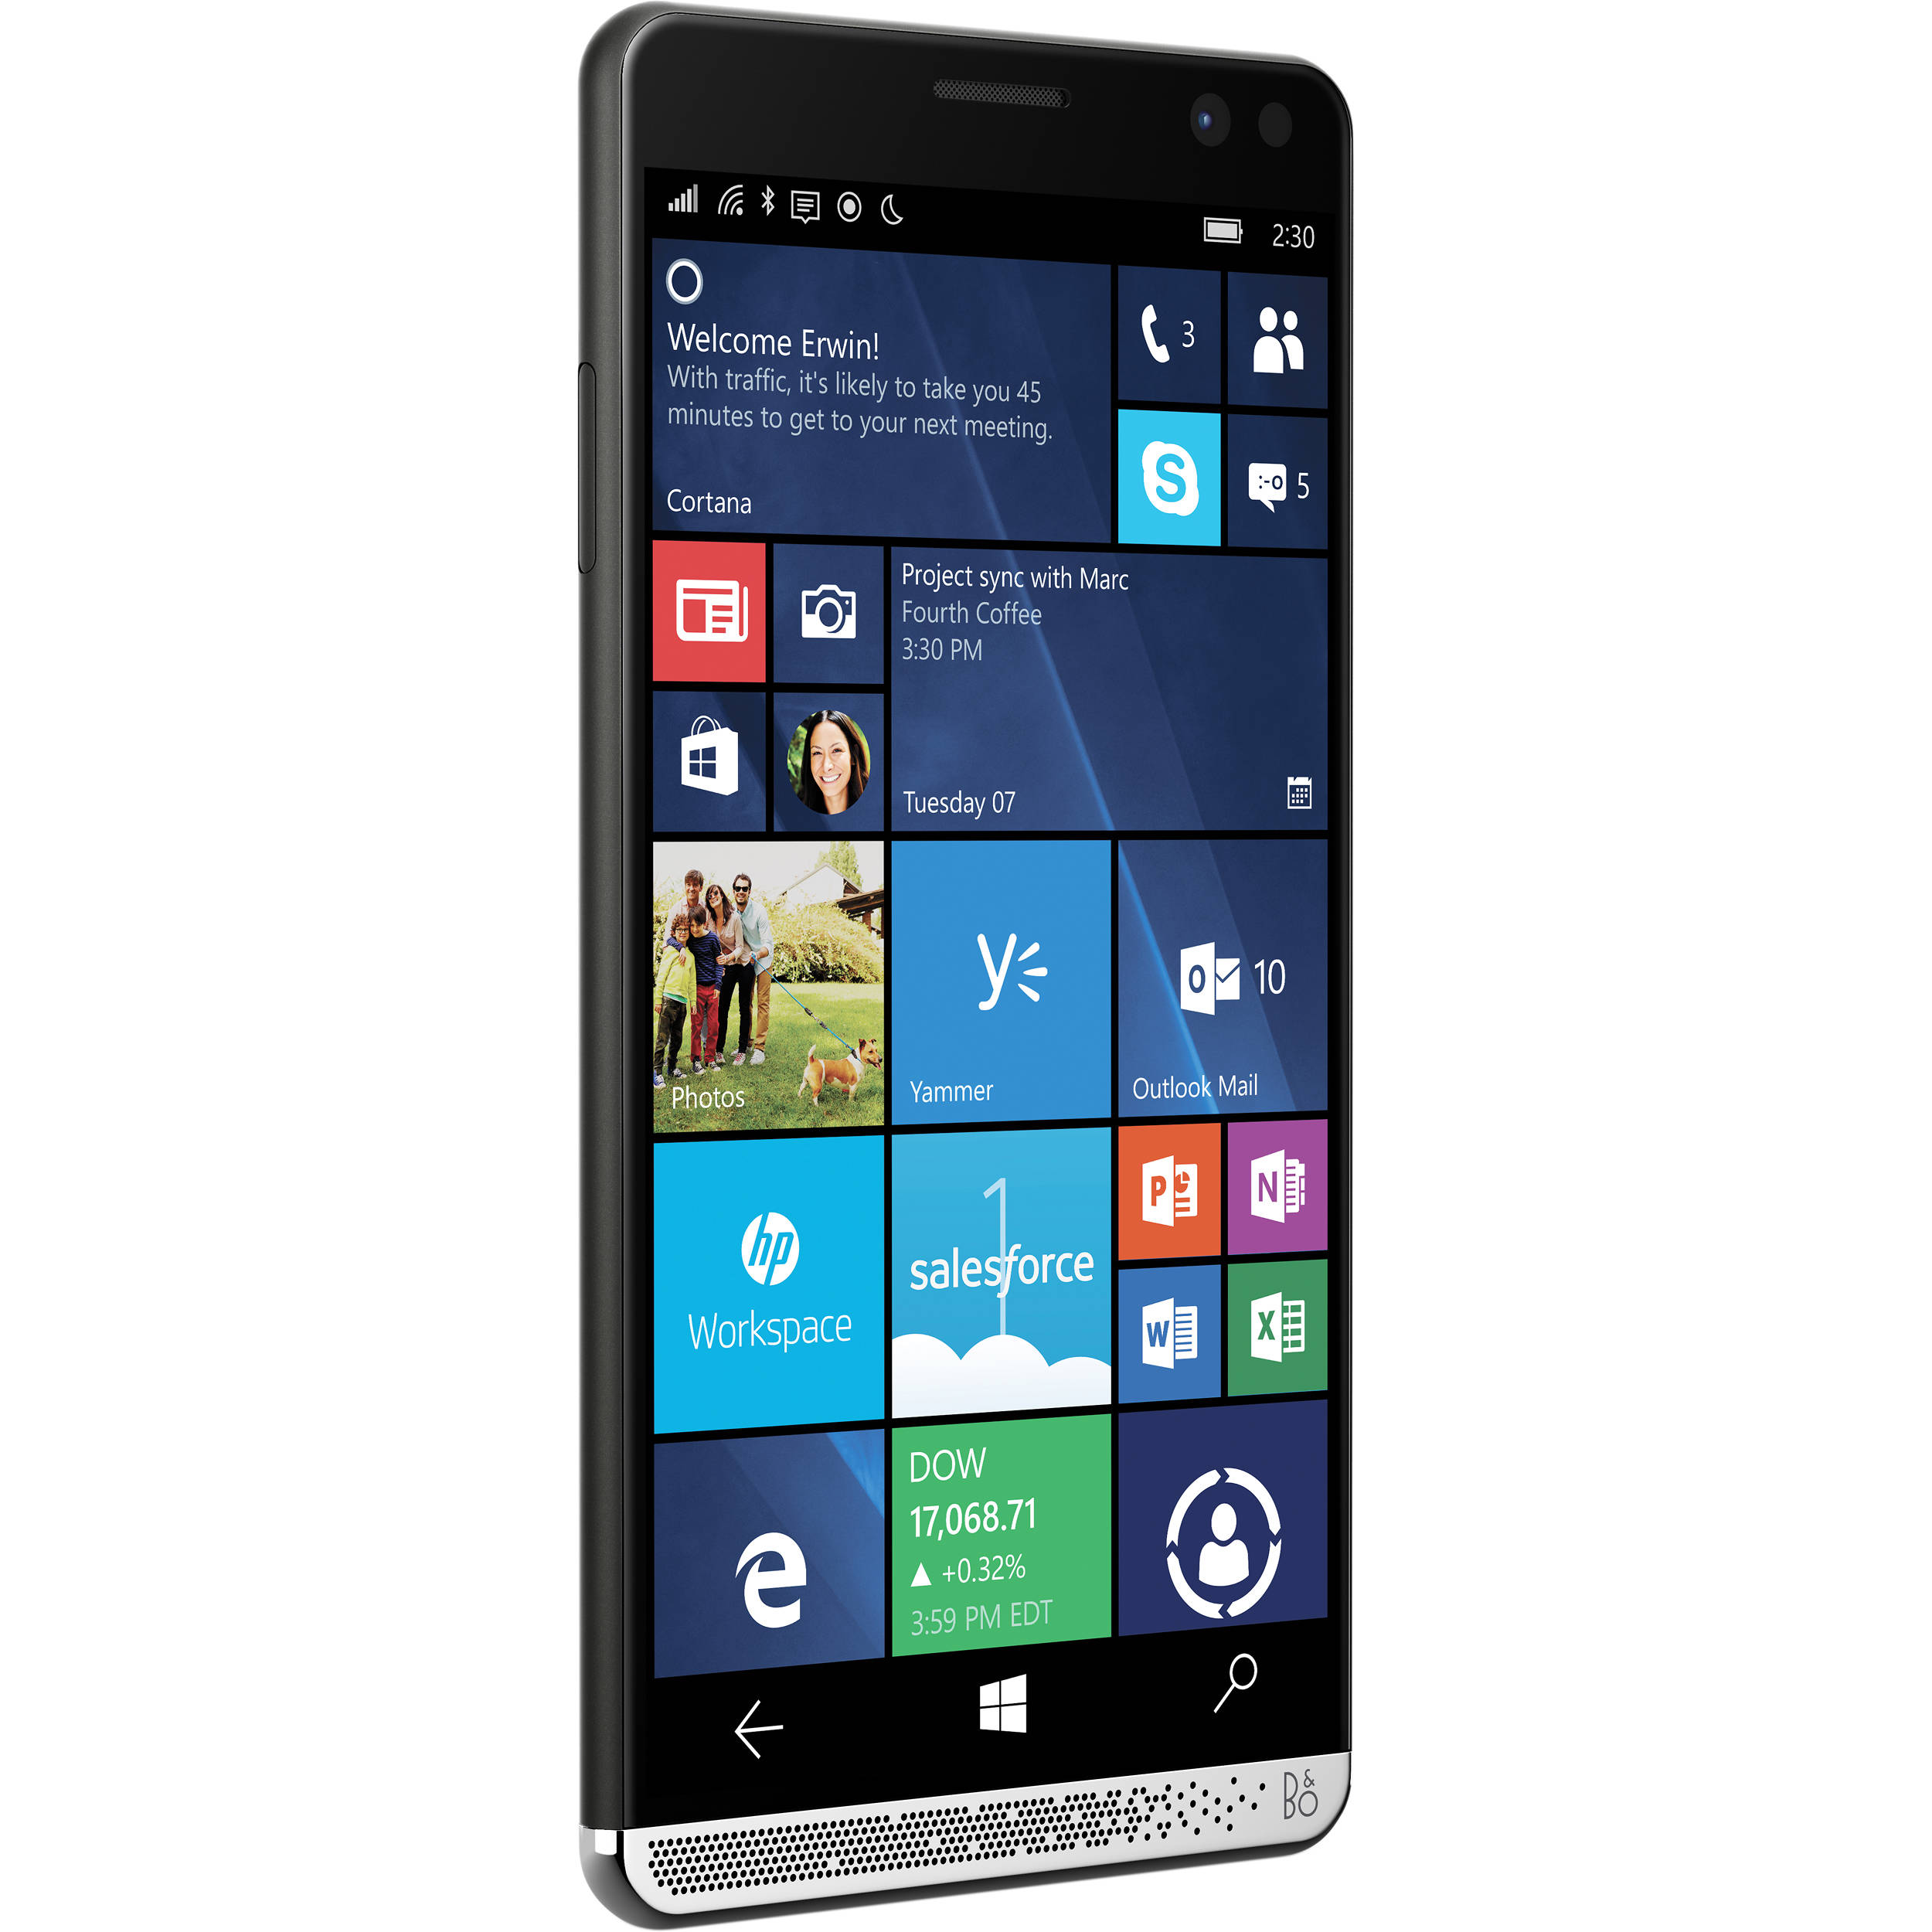 hp elite x3 x9u42ut 64gb smartphone unlocked black. Black Bedroom Furniture Sets. Home Design Ideas